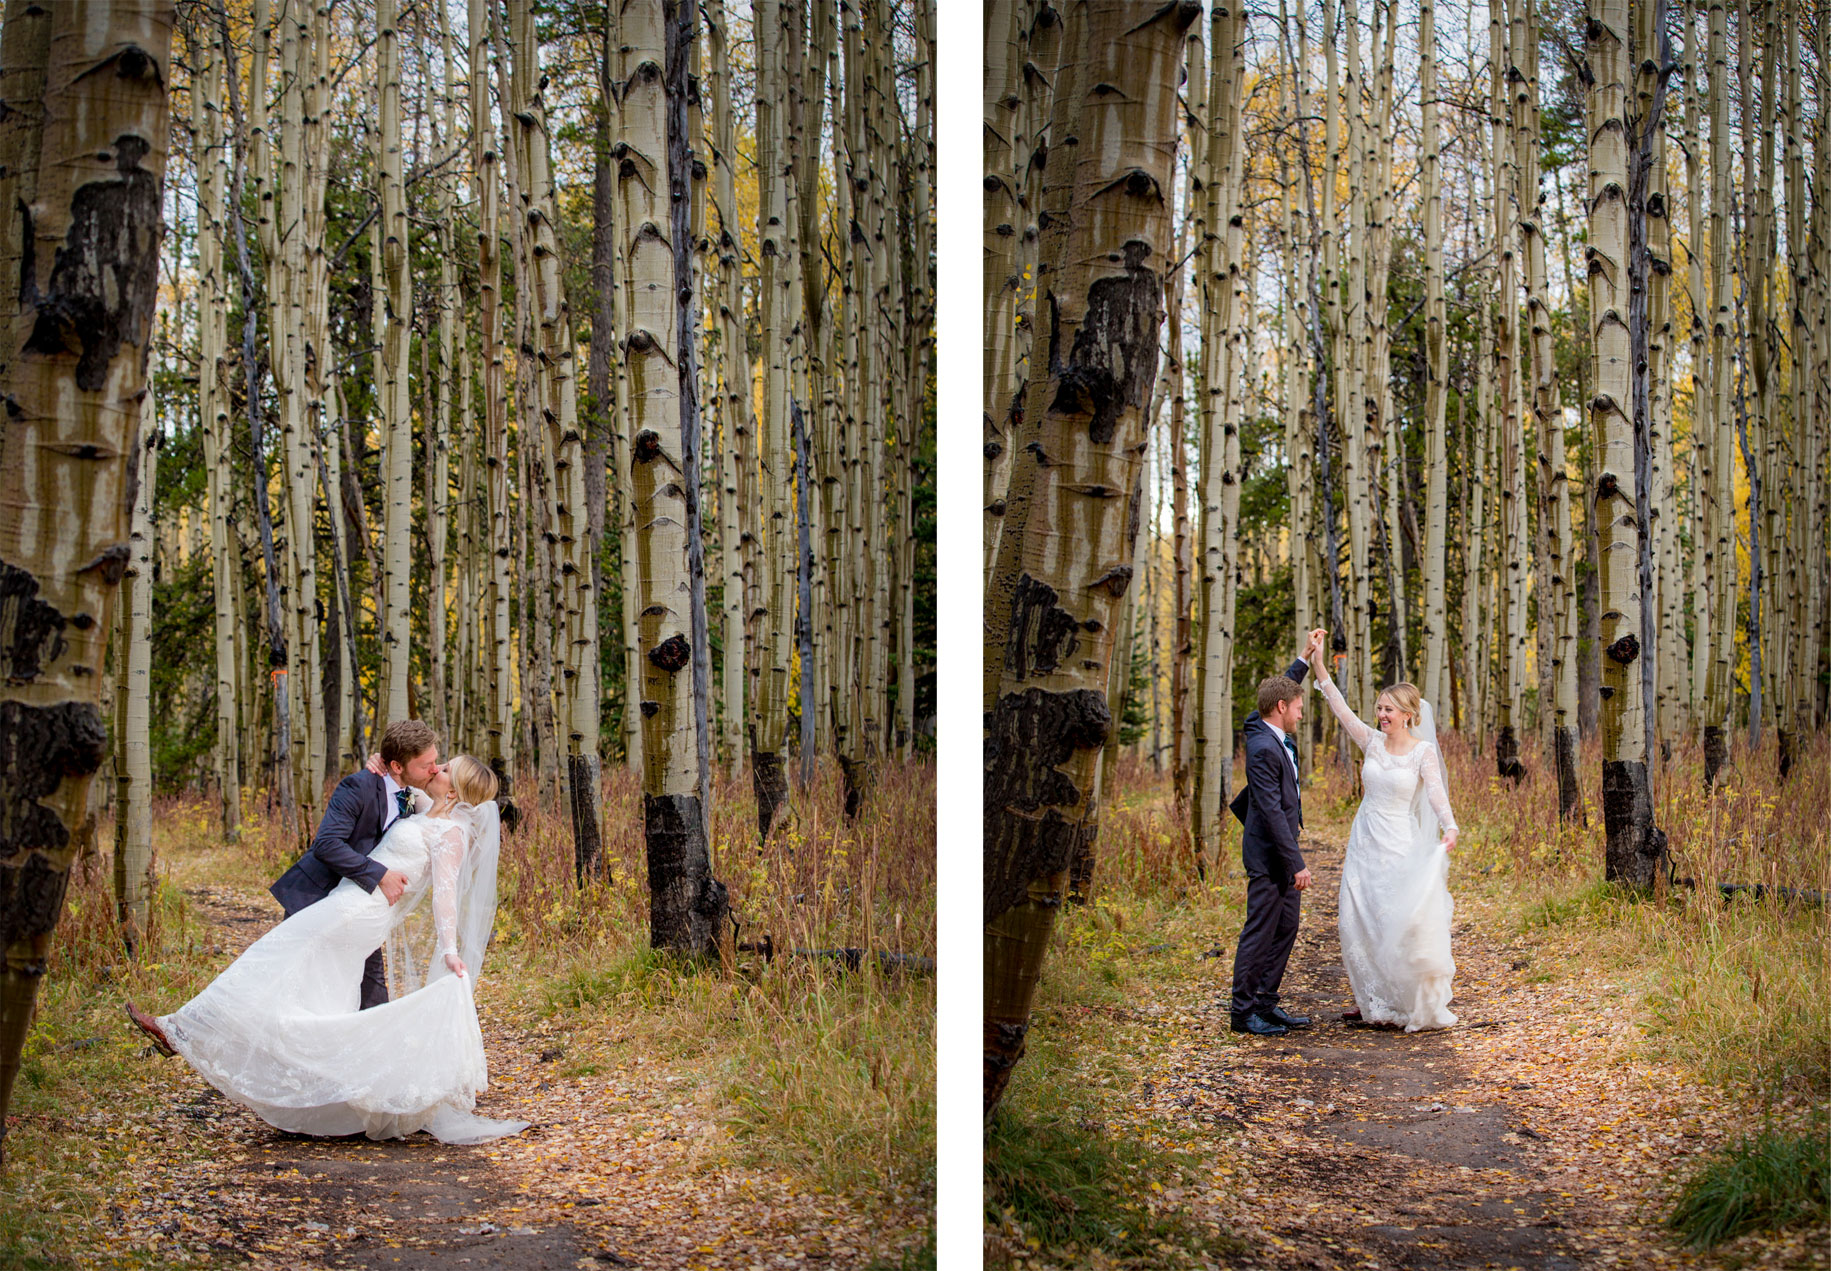 A fall wedding day at Crested Butte Mountain Resort, Colorado